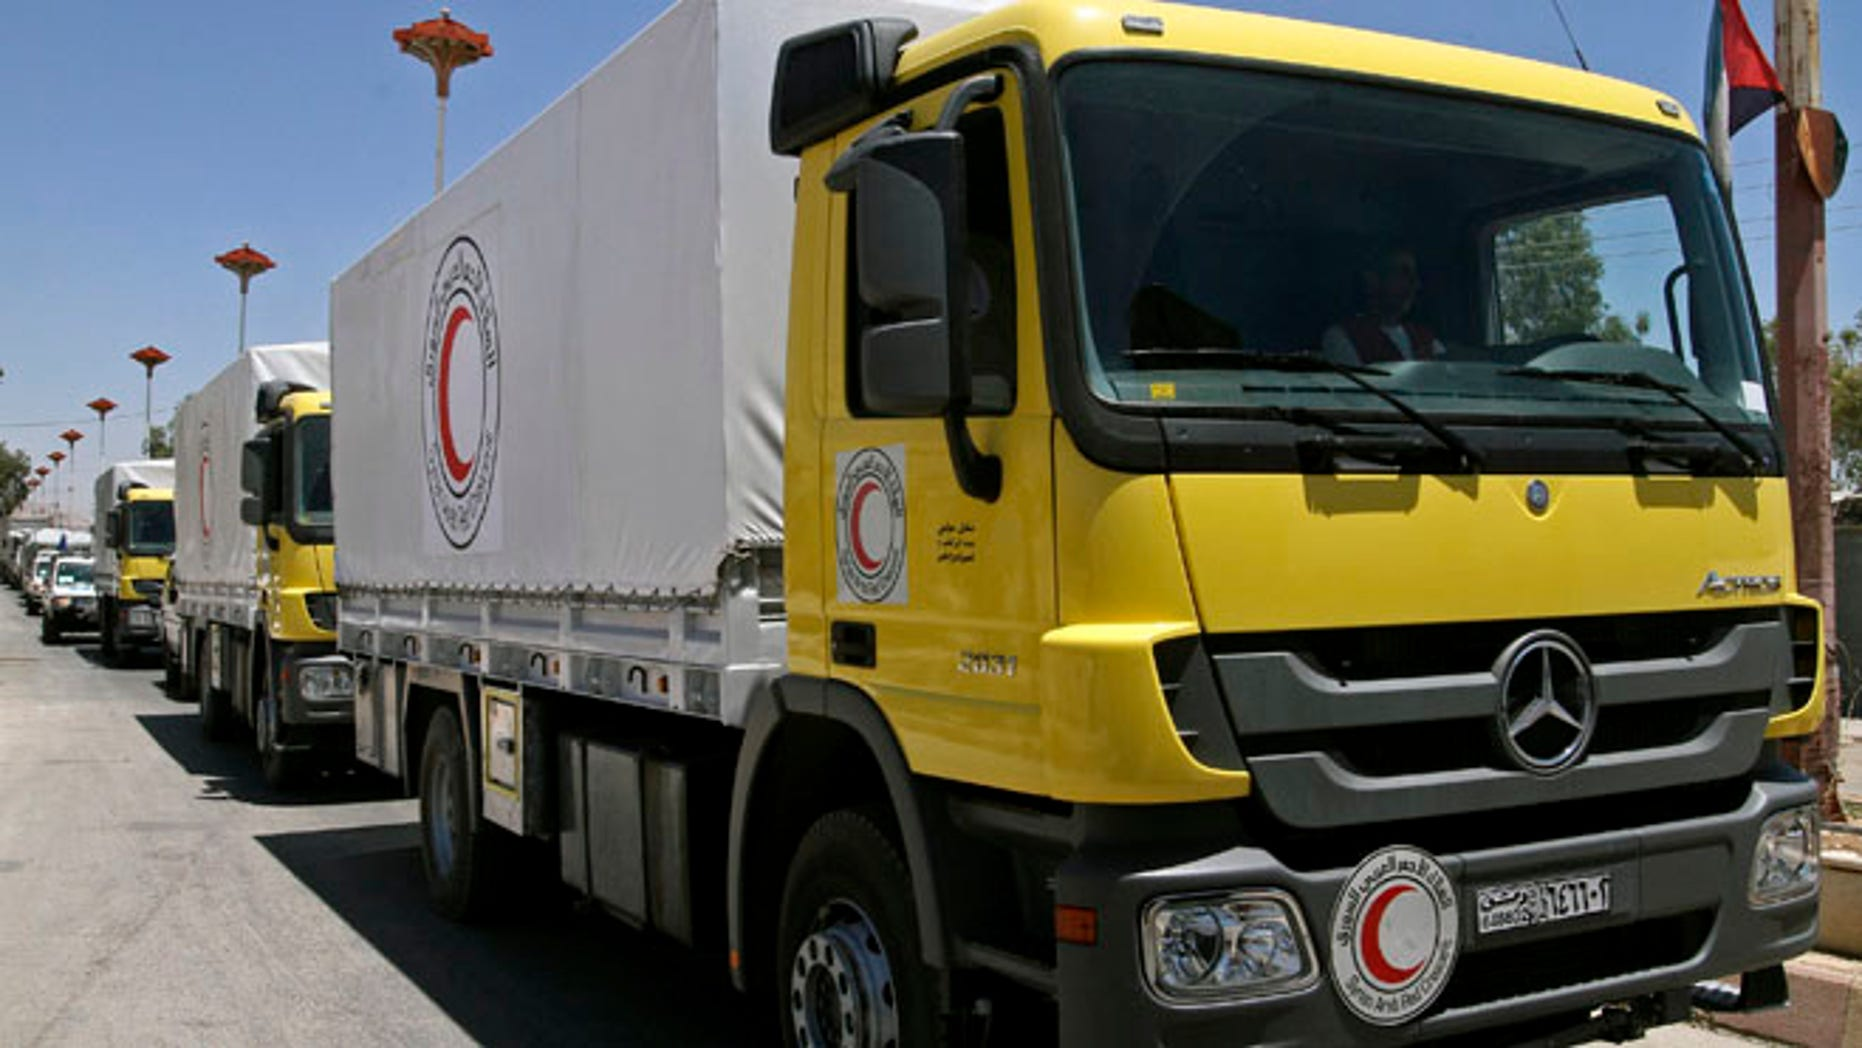 July 14, 2014: Syrian Red Crescent trucks loaded with food parcels under the supervision of the U.N., the Red Crescent and in coordination with the Syrian government, prepare to distribute aid to tens of thousands of besieged Syrians inside the rebel-held Damascus suburb of Moadamiyeh, Syria.